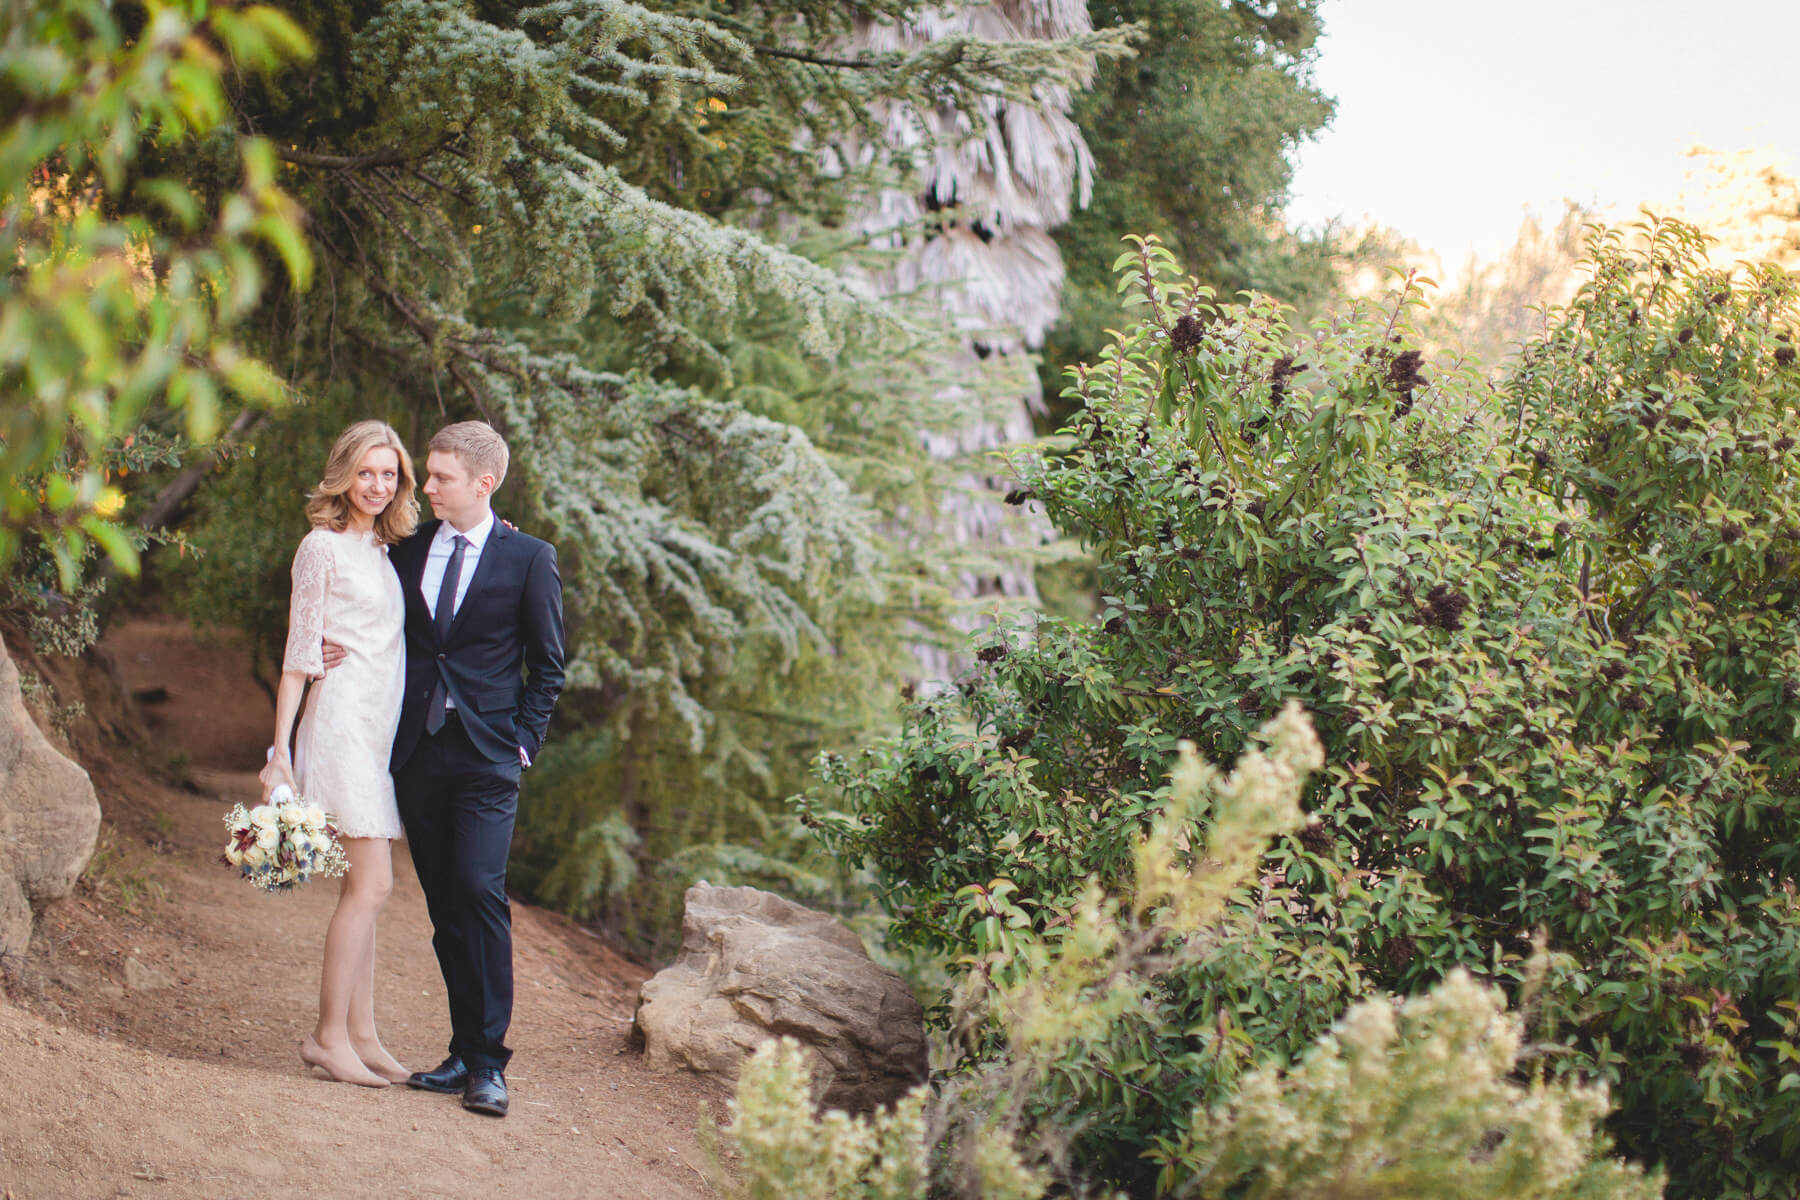 the-light-and-glass-wedding-engagement-photography-20151218-050.jpg